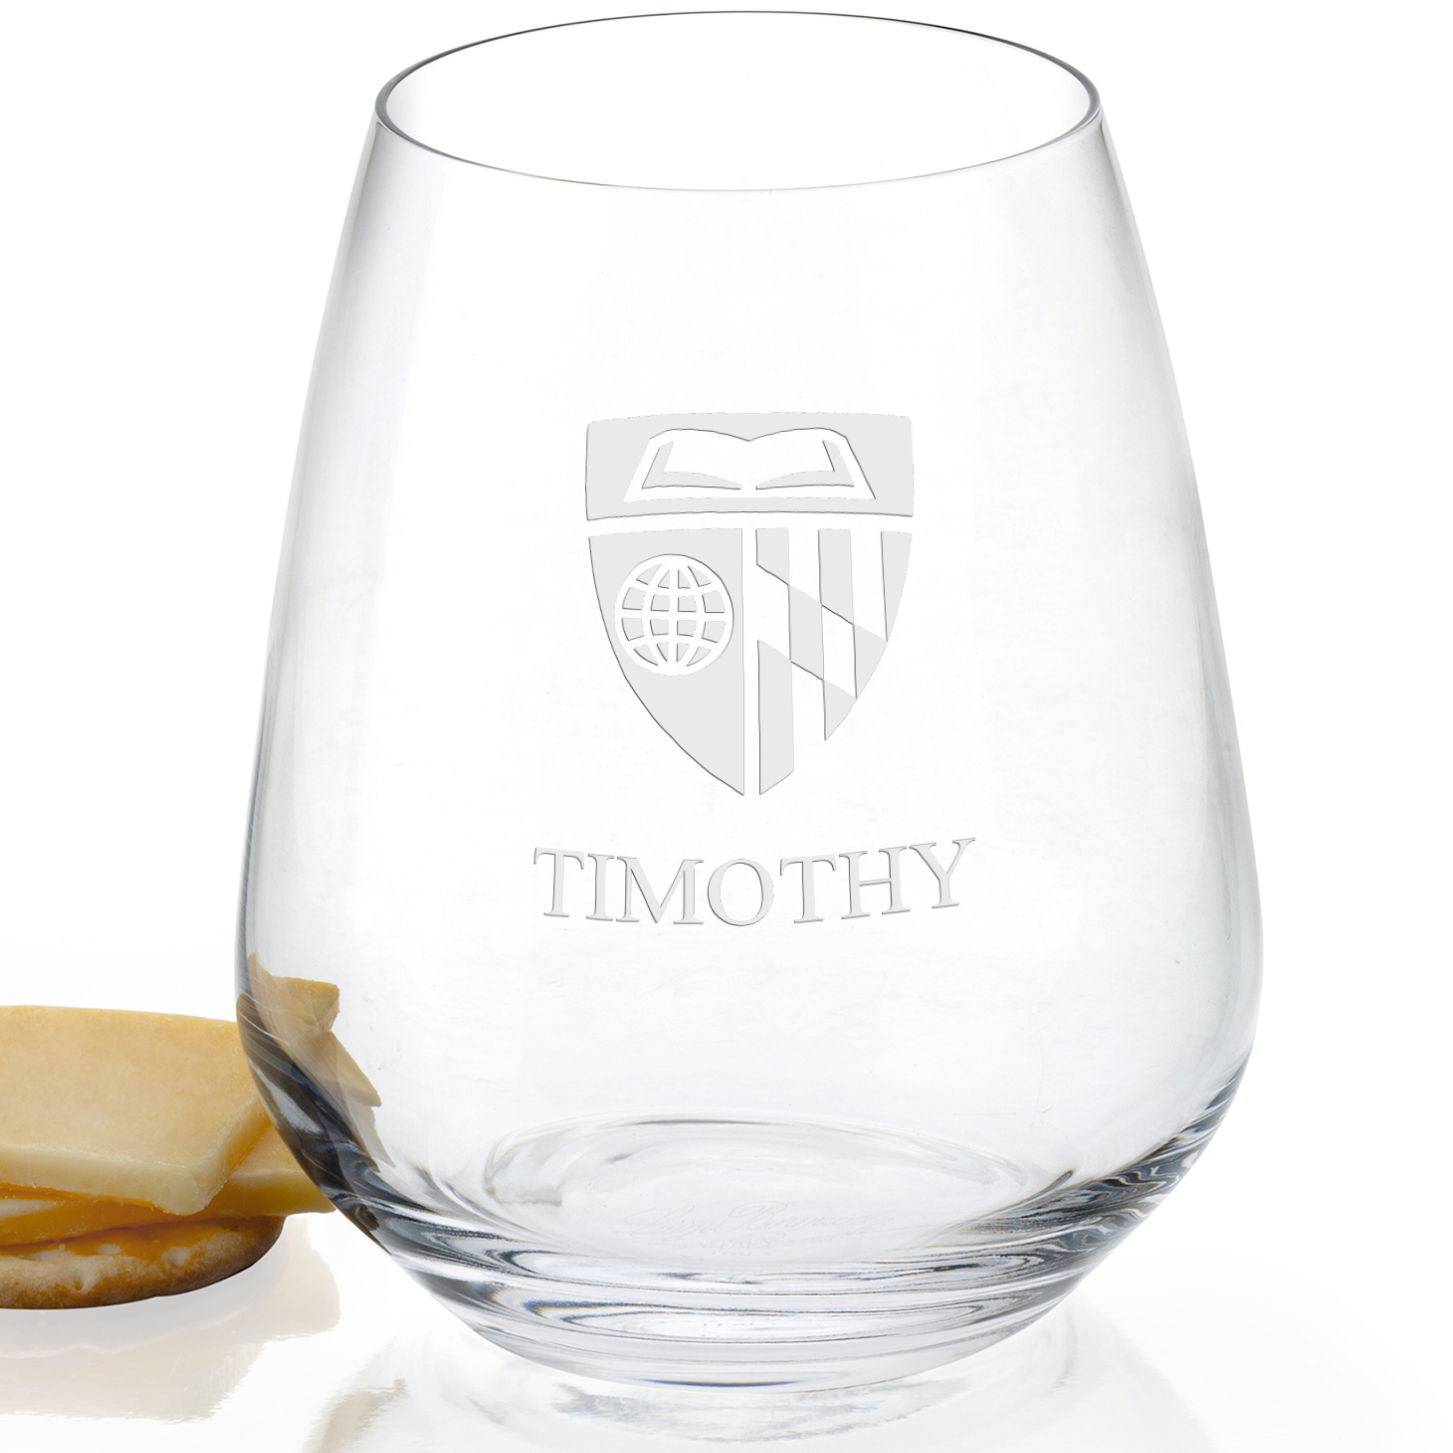 Johns Hopkins University Stemless Wine Glasses - Set of 2 - Image 2